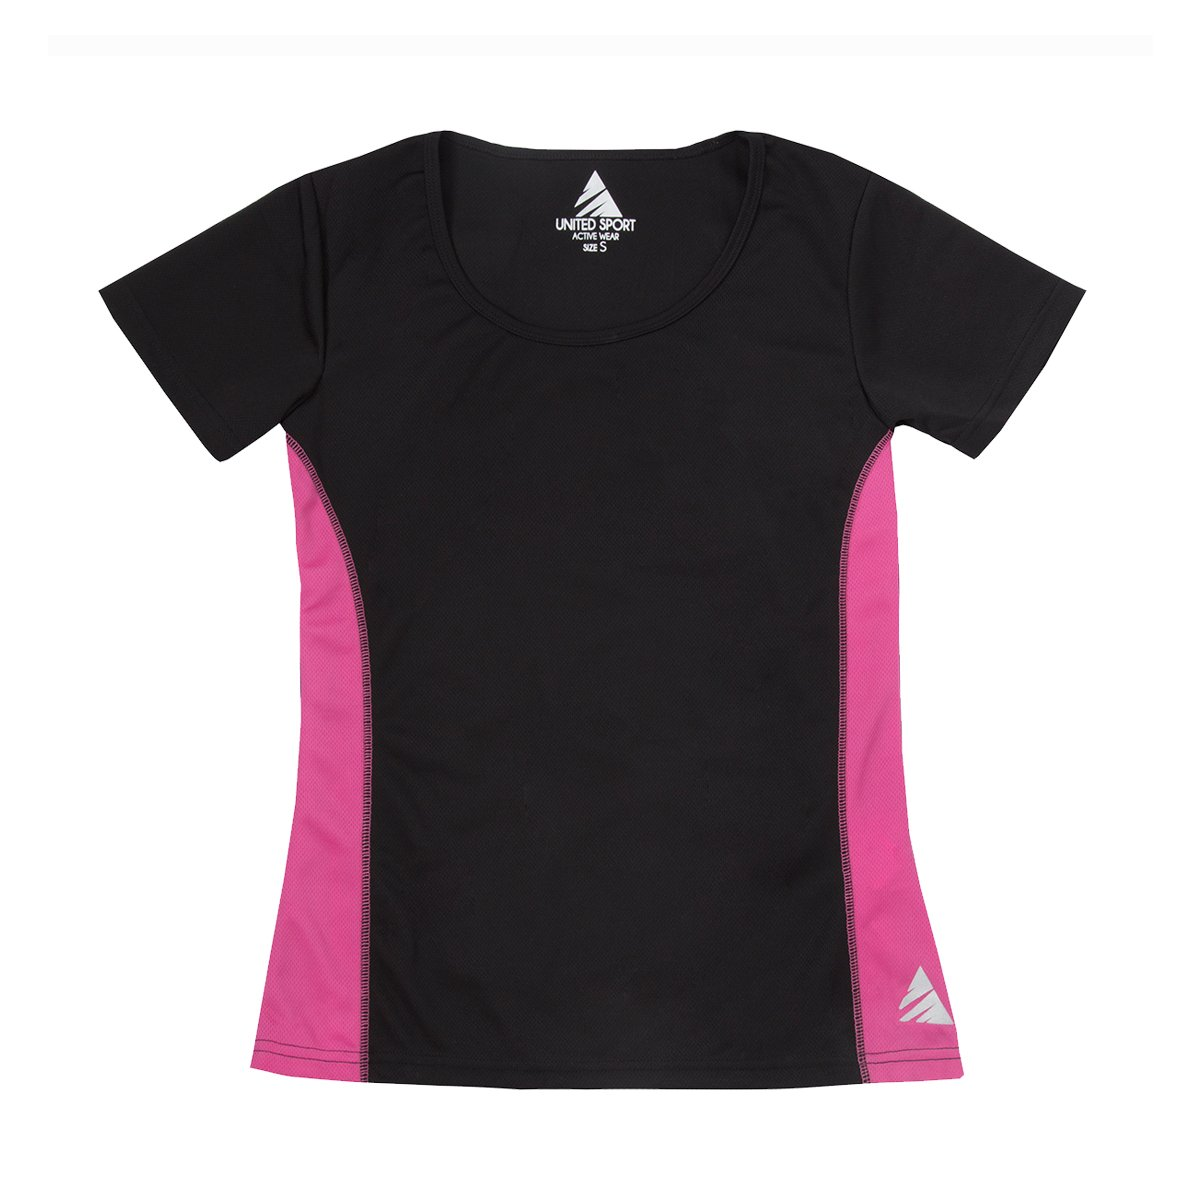 United Sport Women's Sports Top (Sizes S-2XL) High Performance Quick Dry Base Layer - Short Sleeve T-Shirt Great For Yoga Running Gym